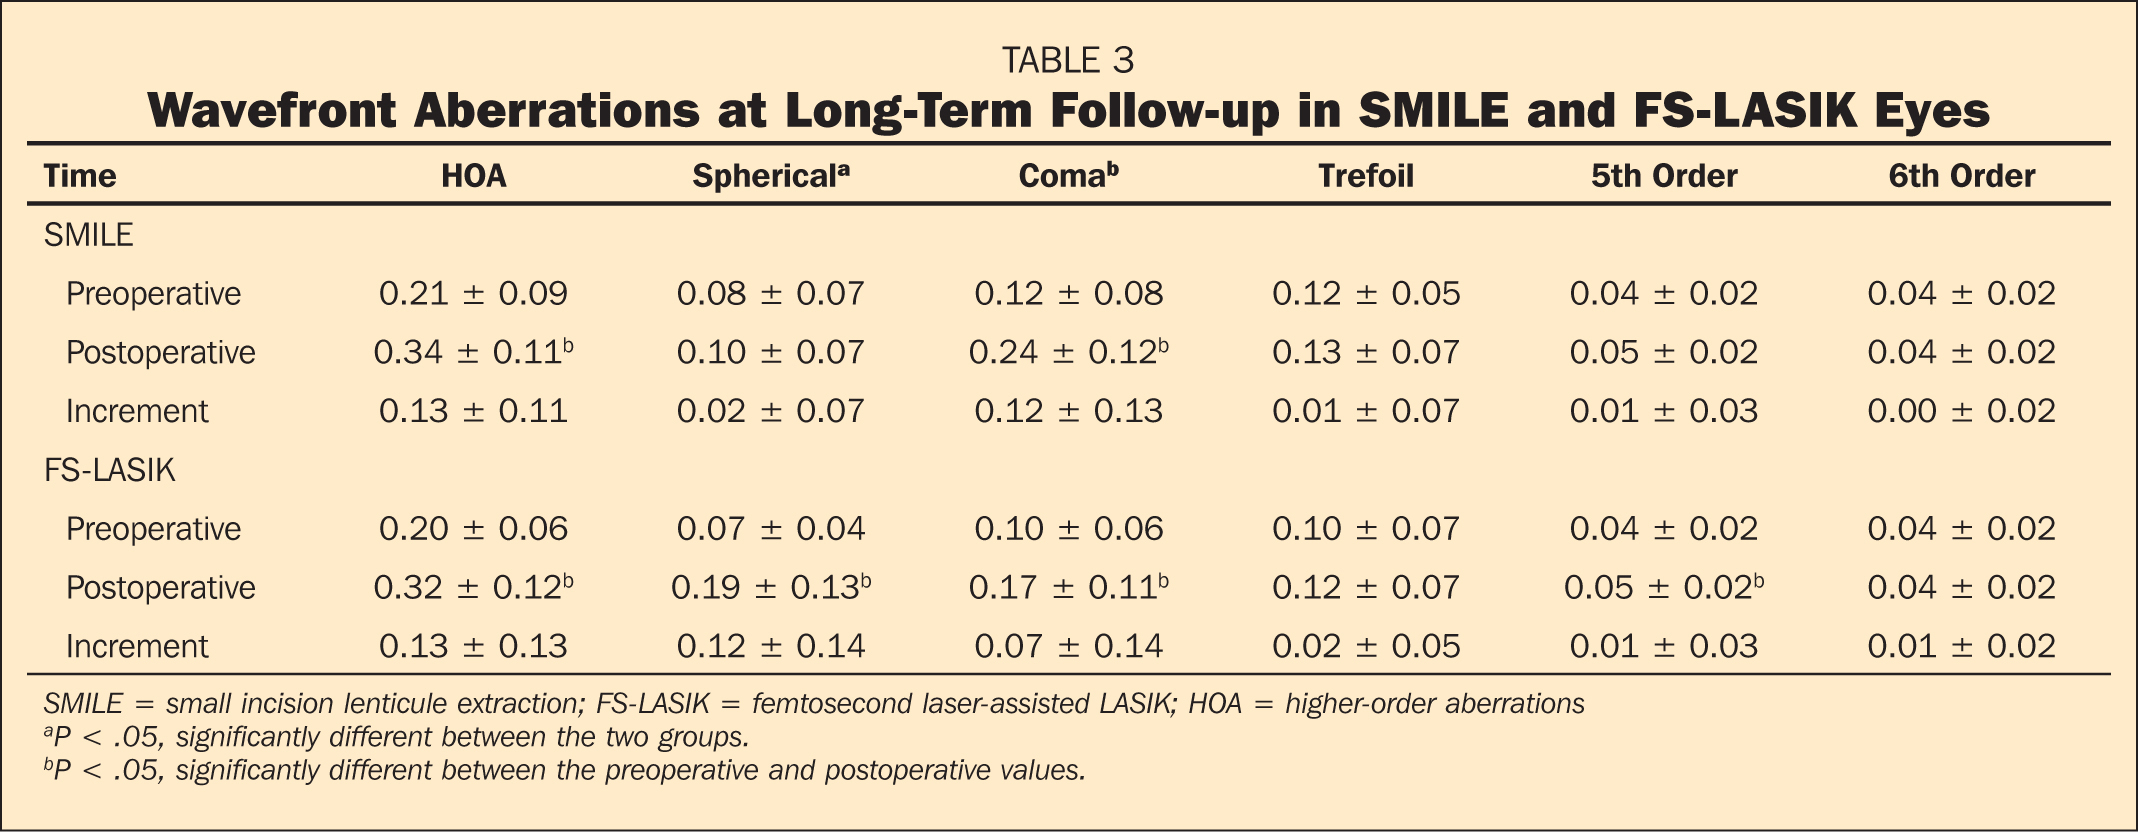 Wavefront Aberrations at Long-Term Follow-up in SMILE and FS-LASIK Eyes